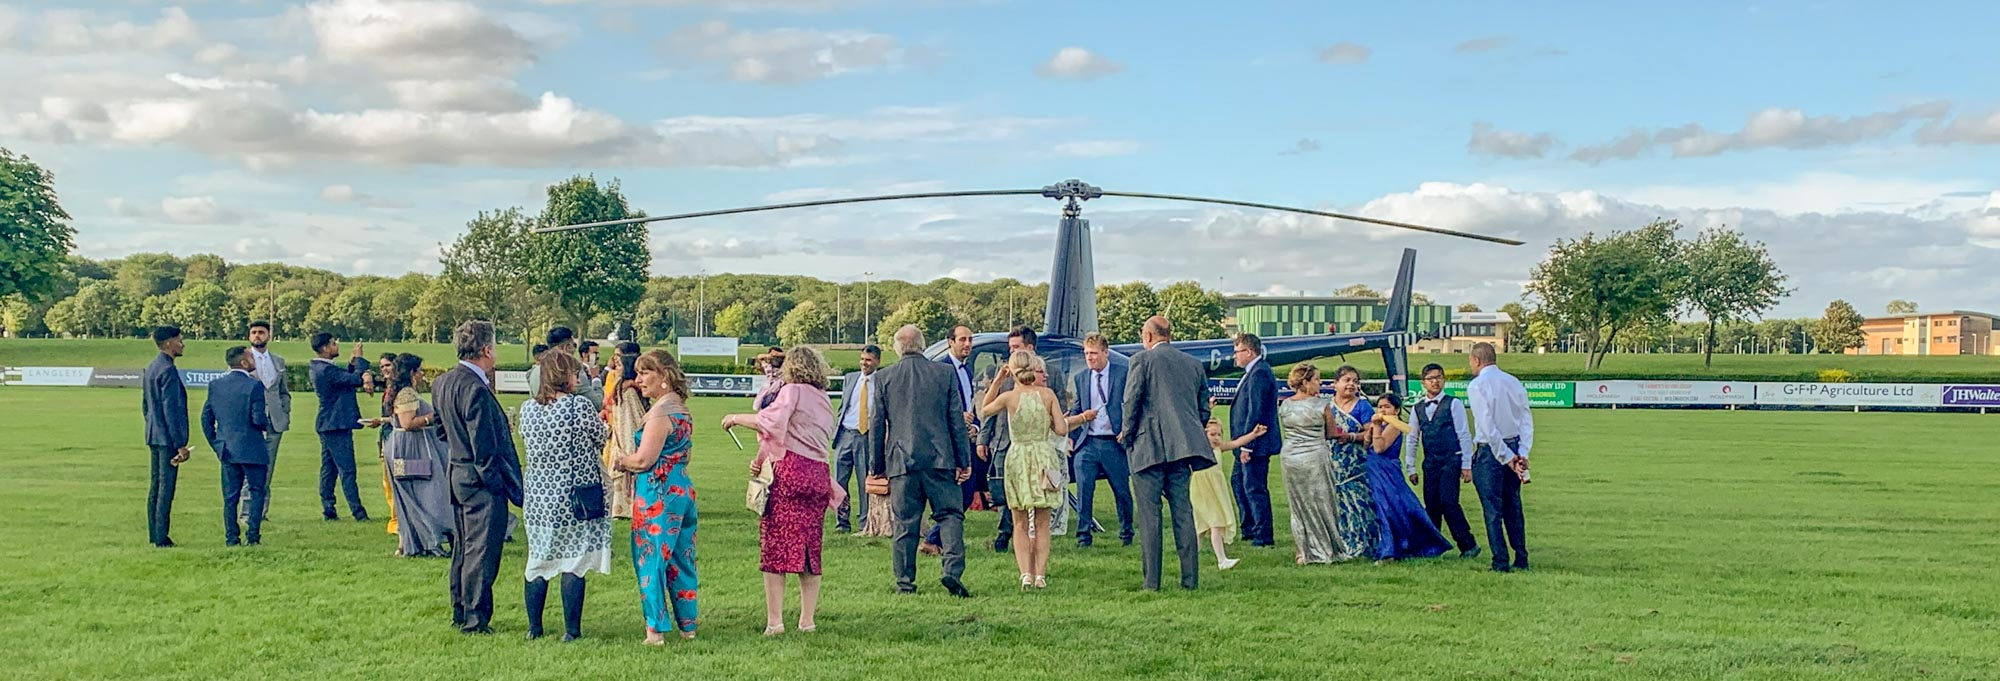 Our Favourite Helicopter Wedding Venues